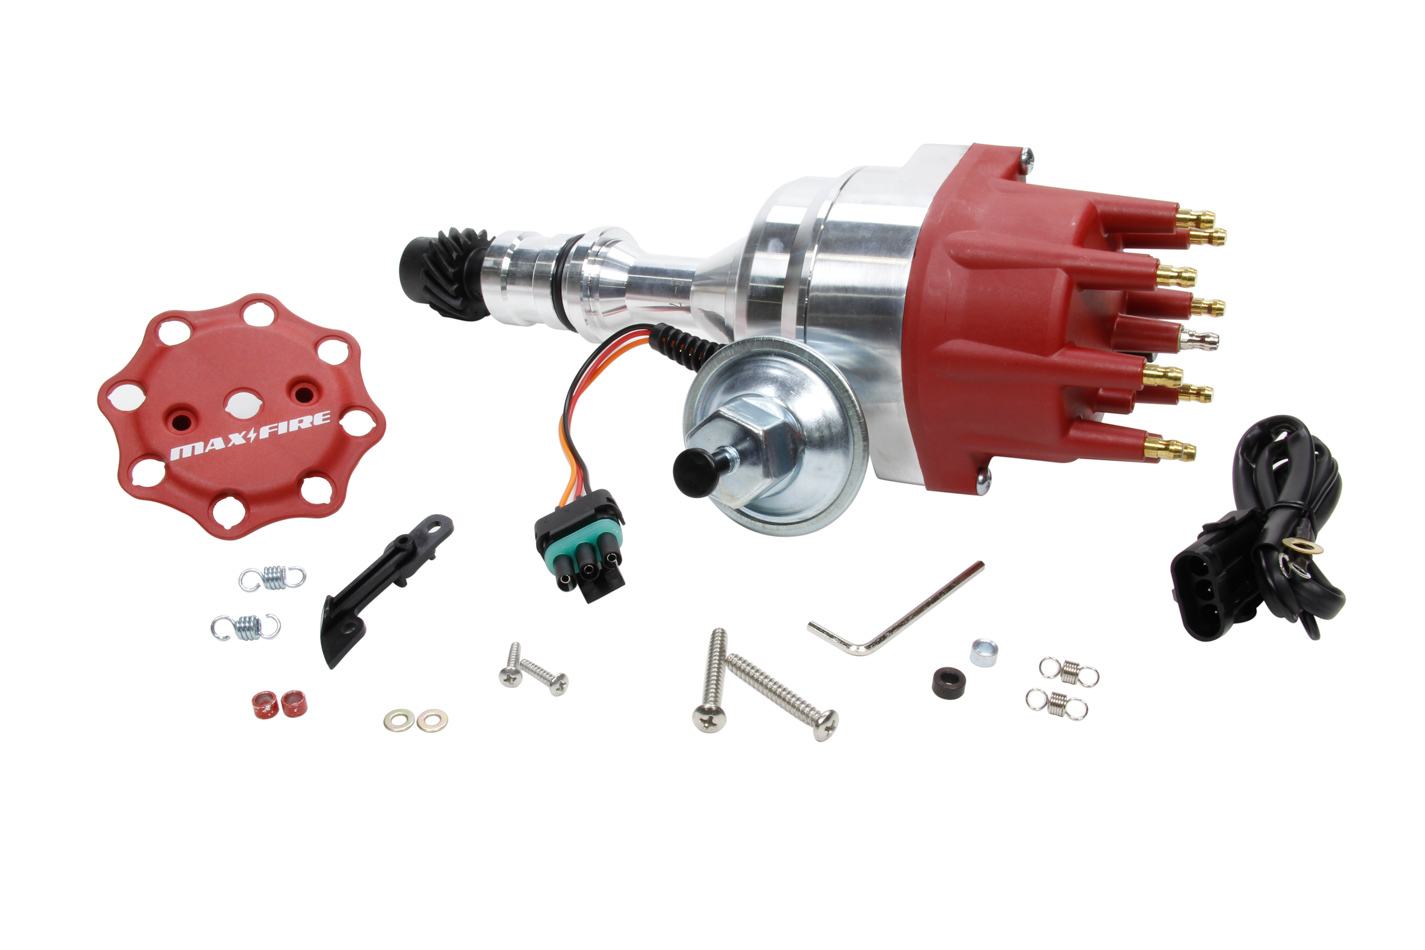 Edelbrock 22764 Distributor, Max-Fire, Ready-To-Run, Magnetic Pickup, Mechanical / Vacuum Advance, HEI Style Terminal, Red, Oldsmobile V8, Each